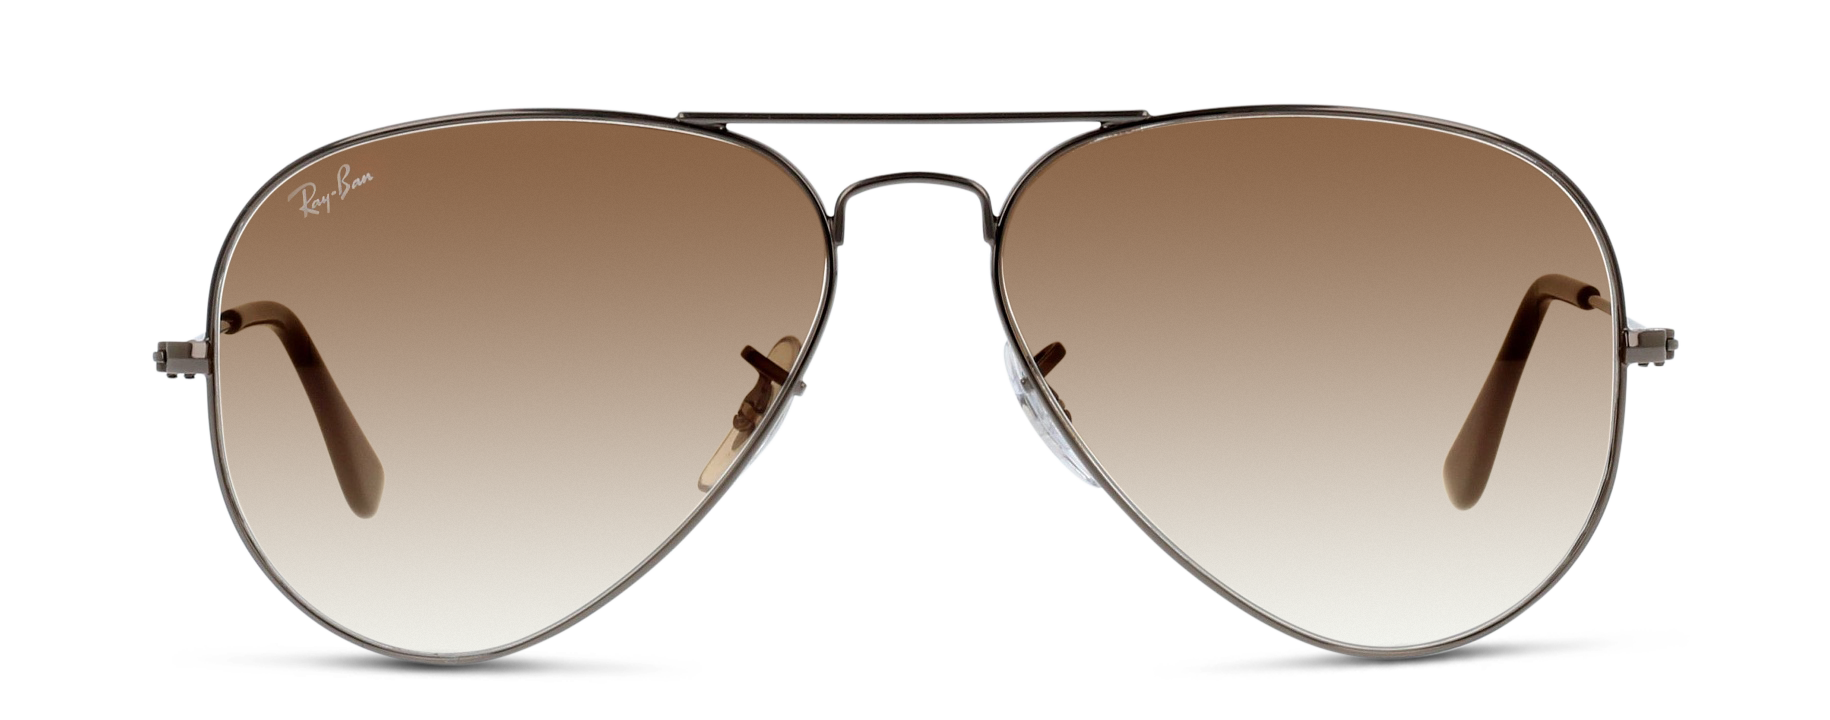 Front Ray-Ban 0RB3025/004-51/6214/140 Brun/BROWN